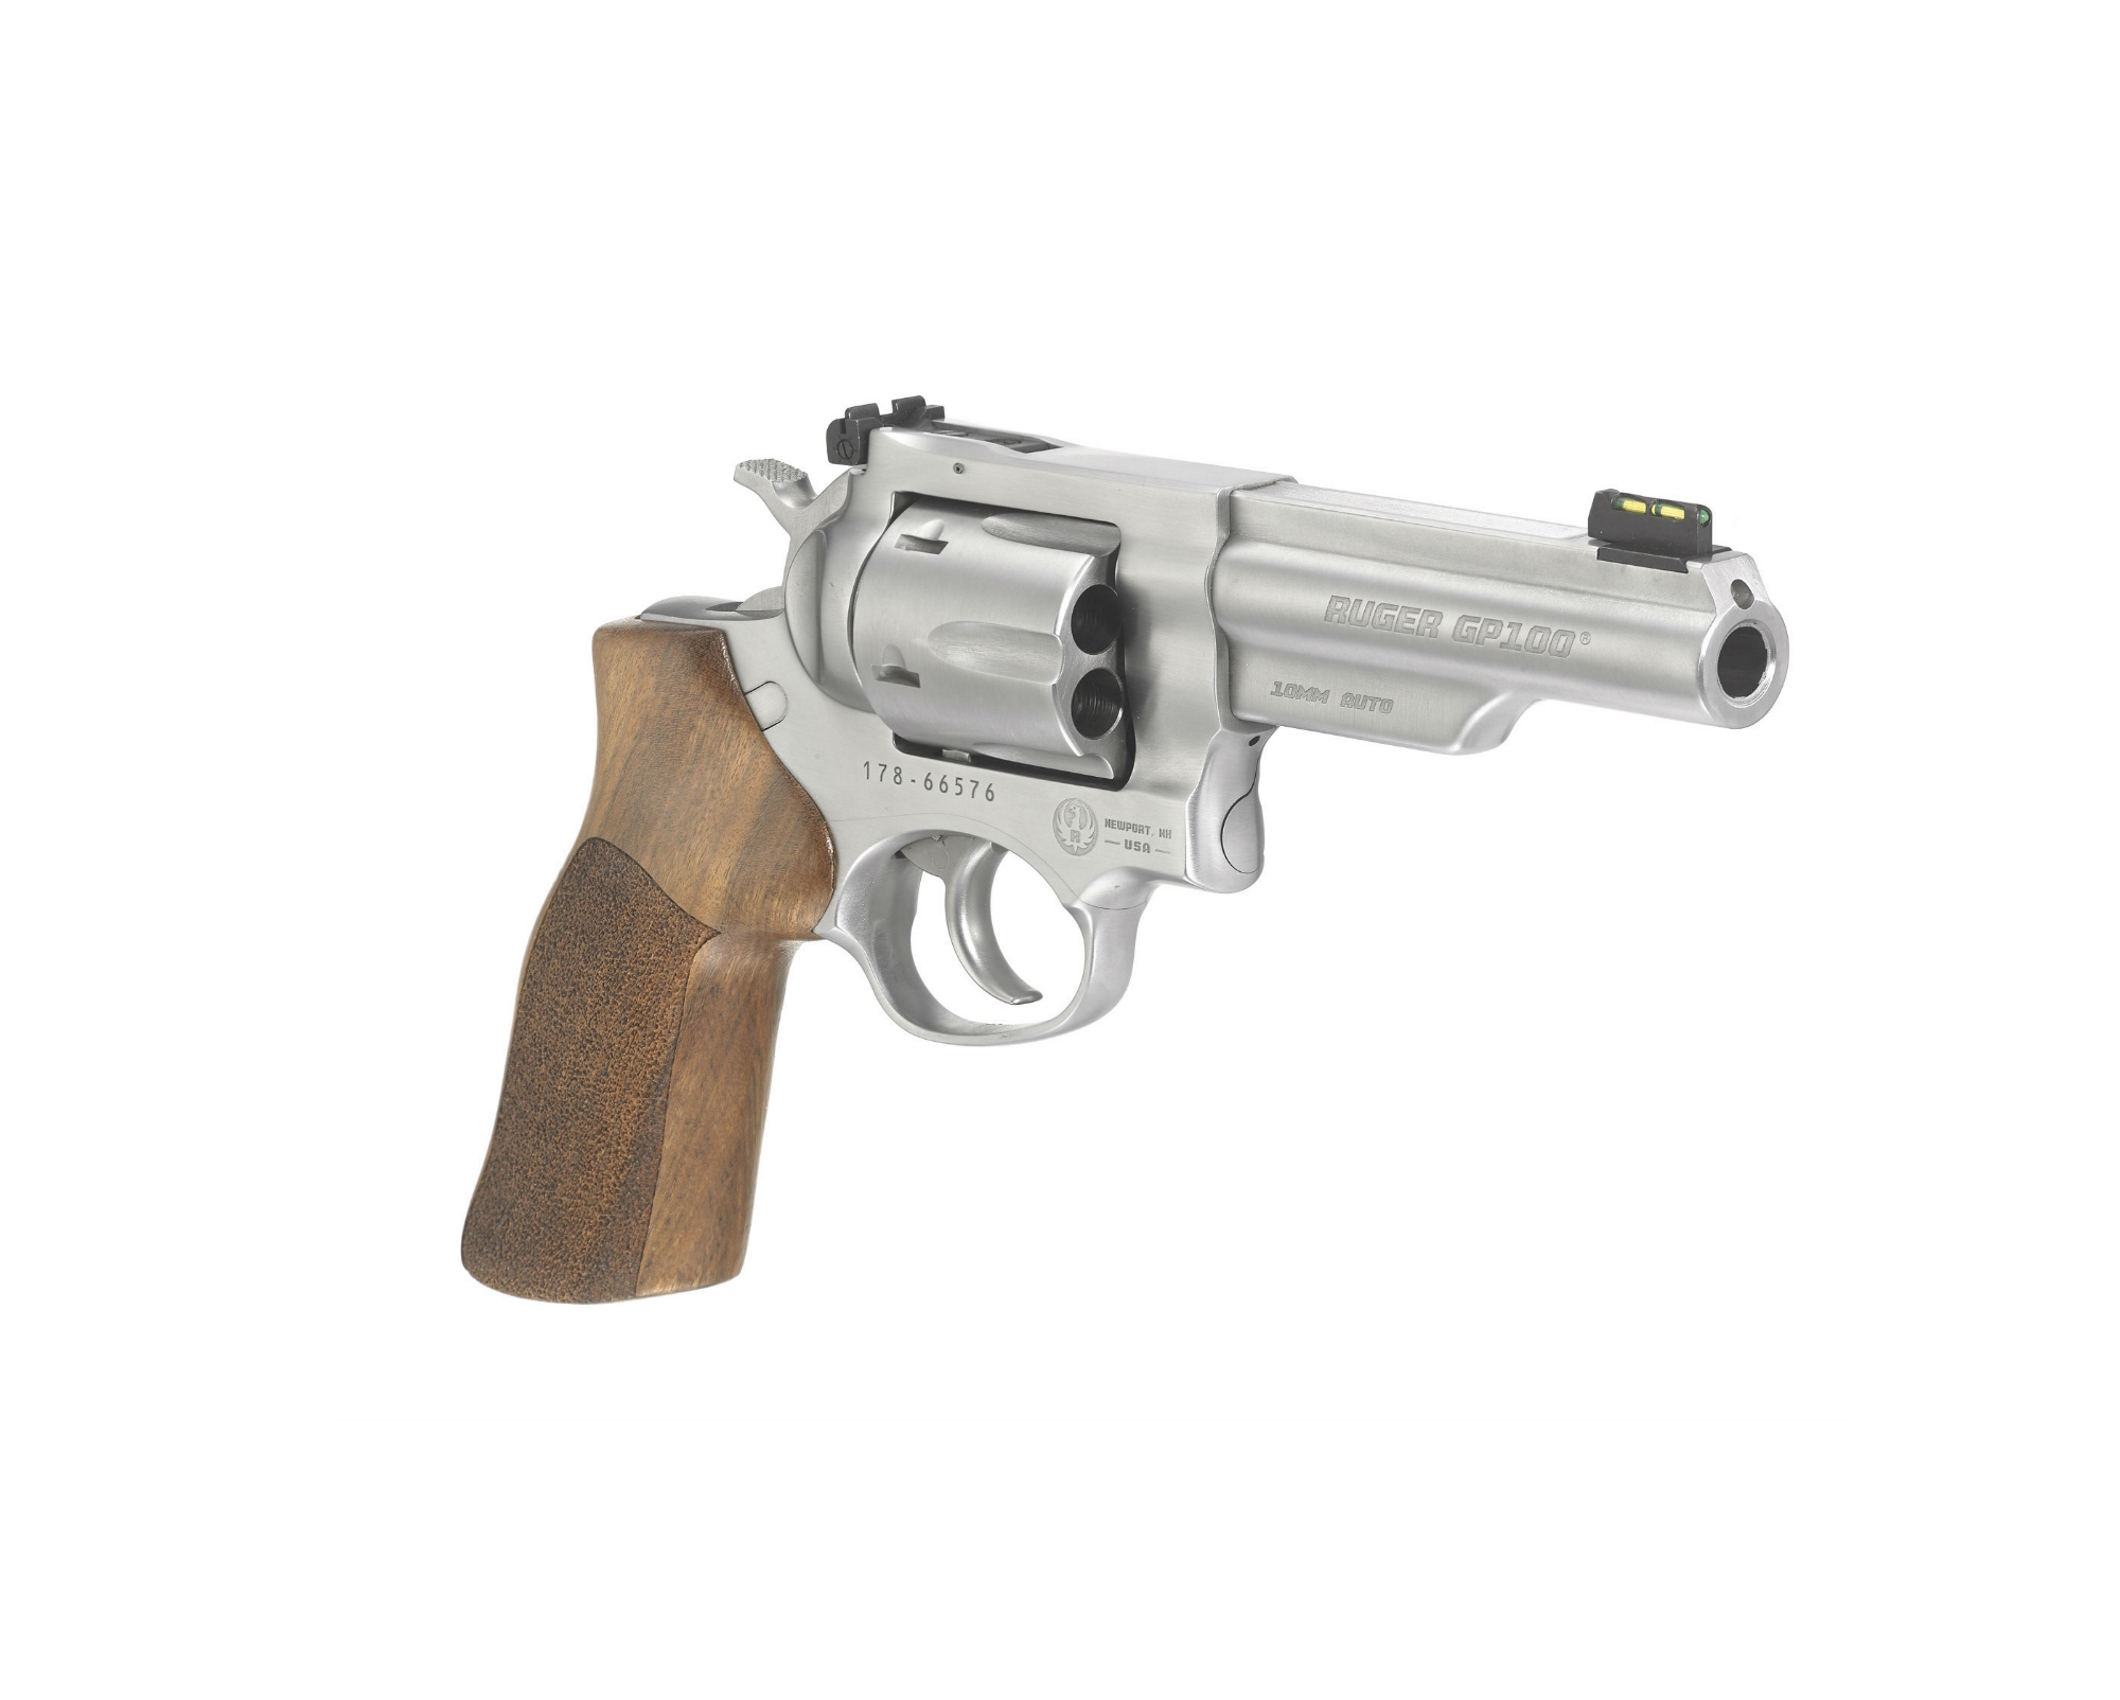 The new 10mm Auto version of the GP100 Match Champion revolver.